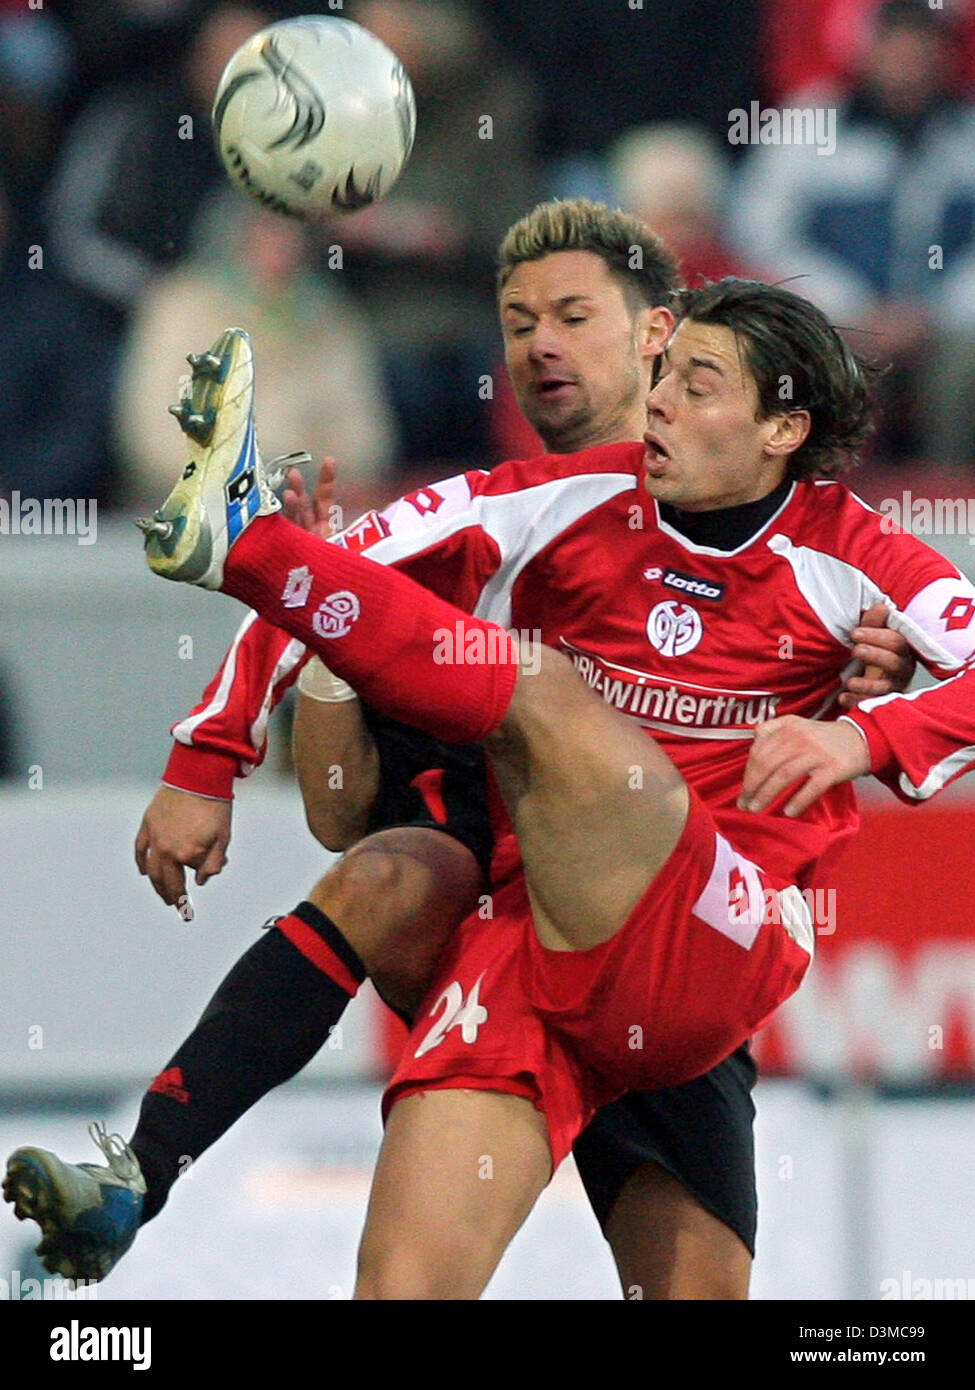 Mainz player Benjamin Weigelt (F) and Albert Streit from Cologne vie for the ball in the FSV Mainz 05 vs. FC Cologne - Stock Image